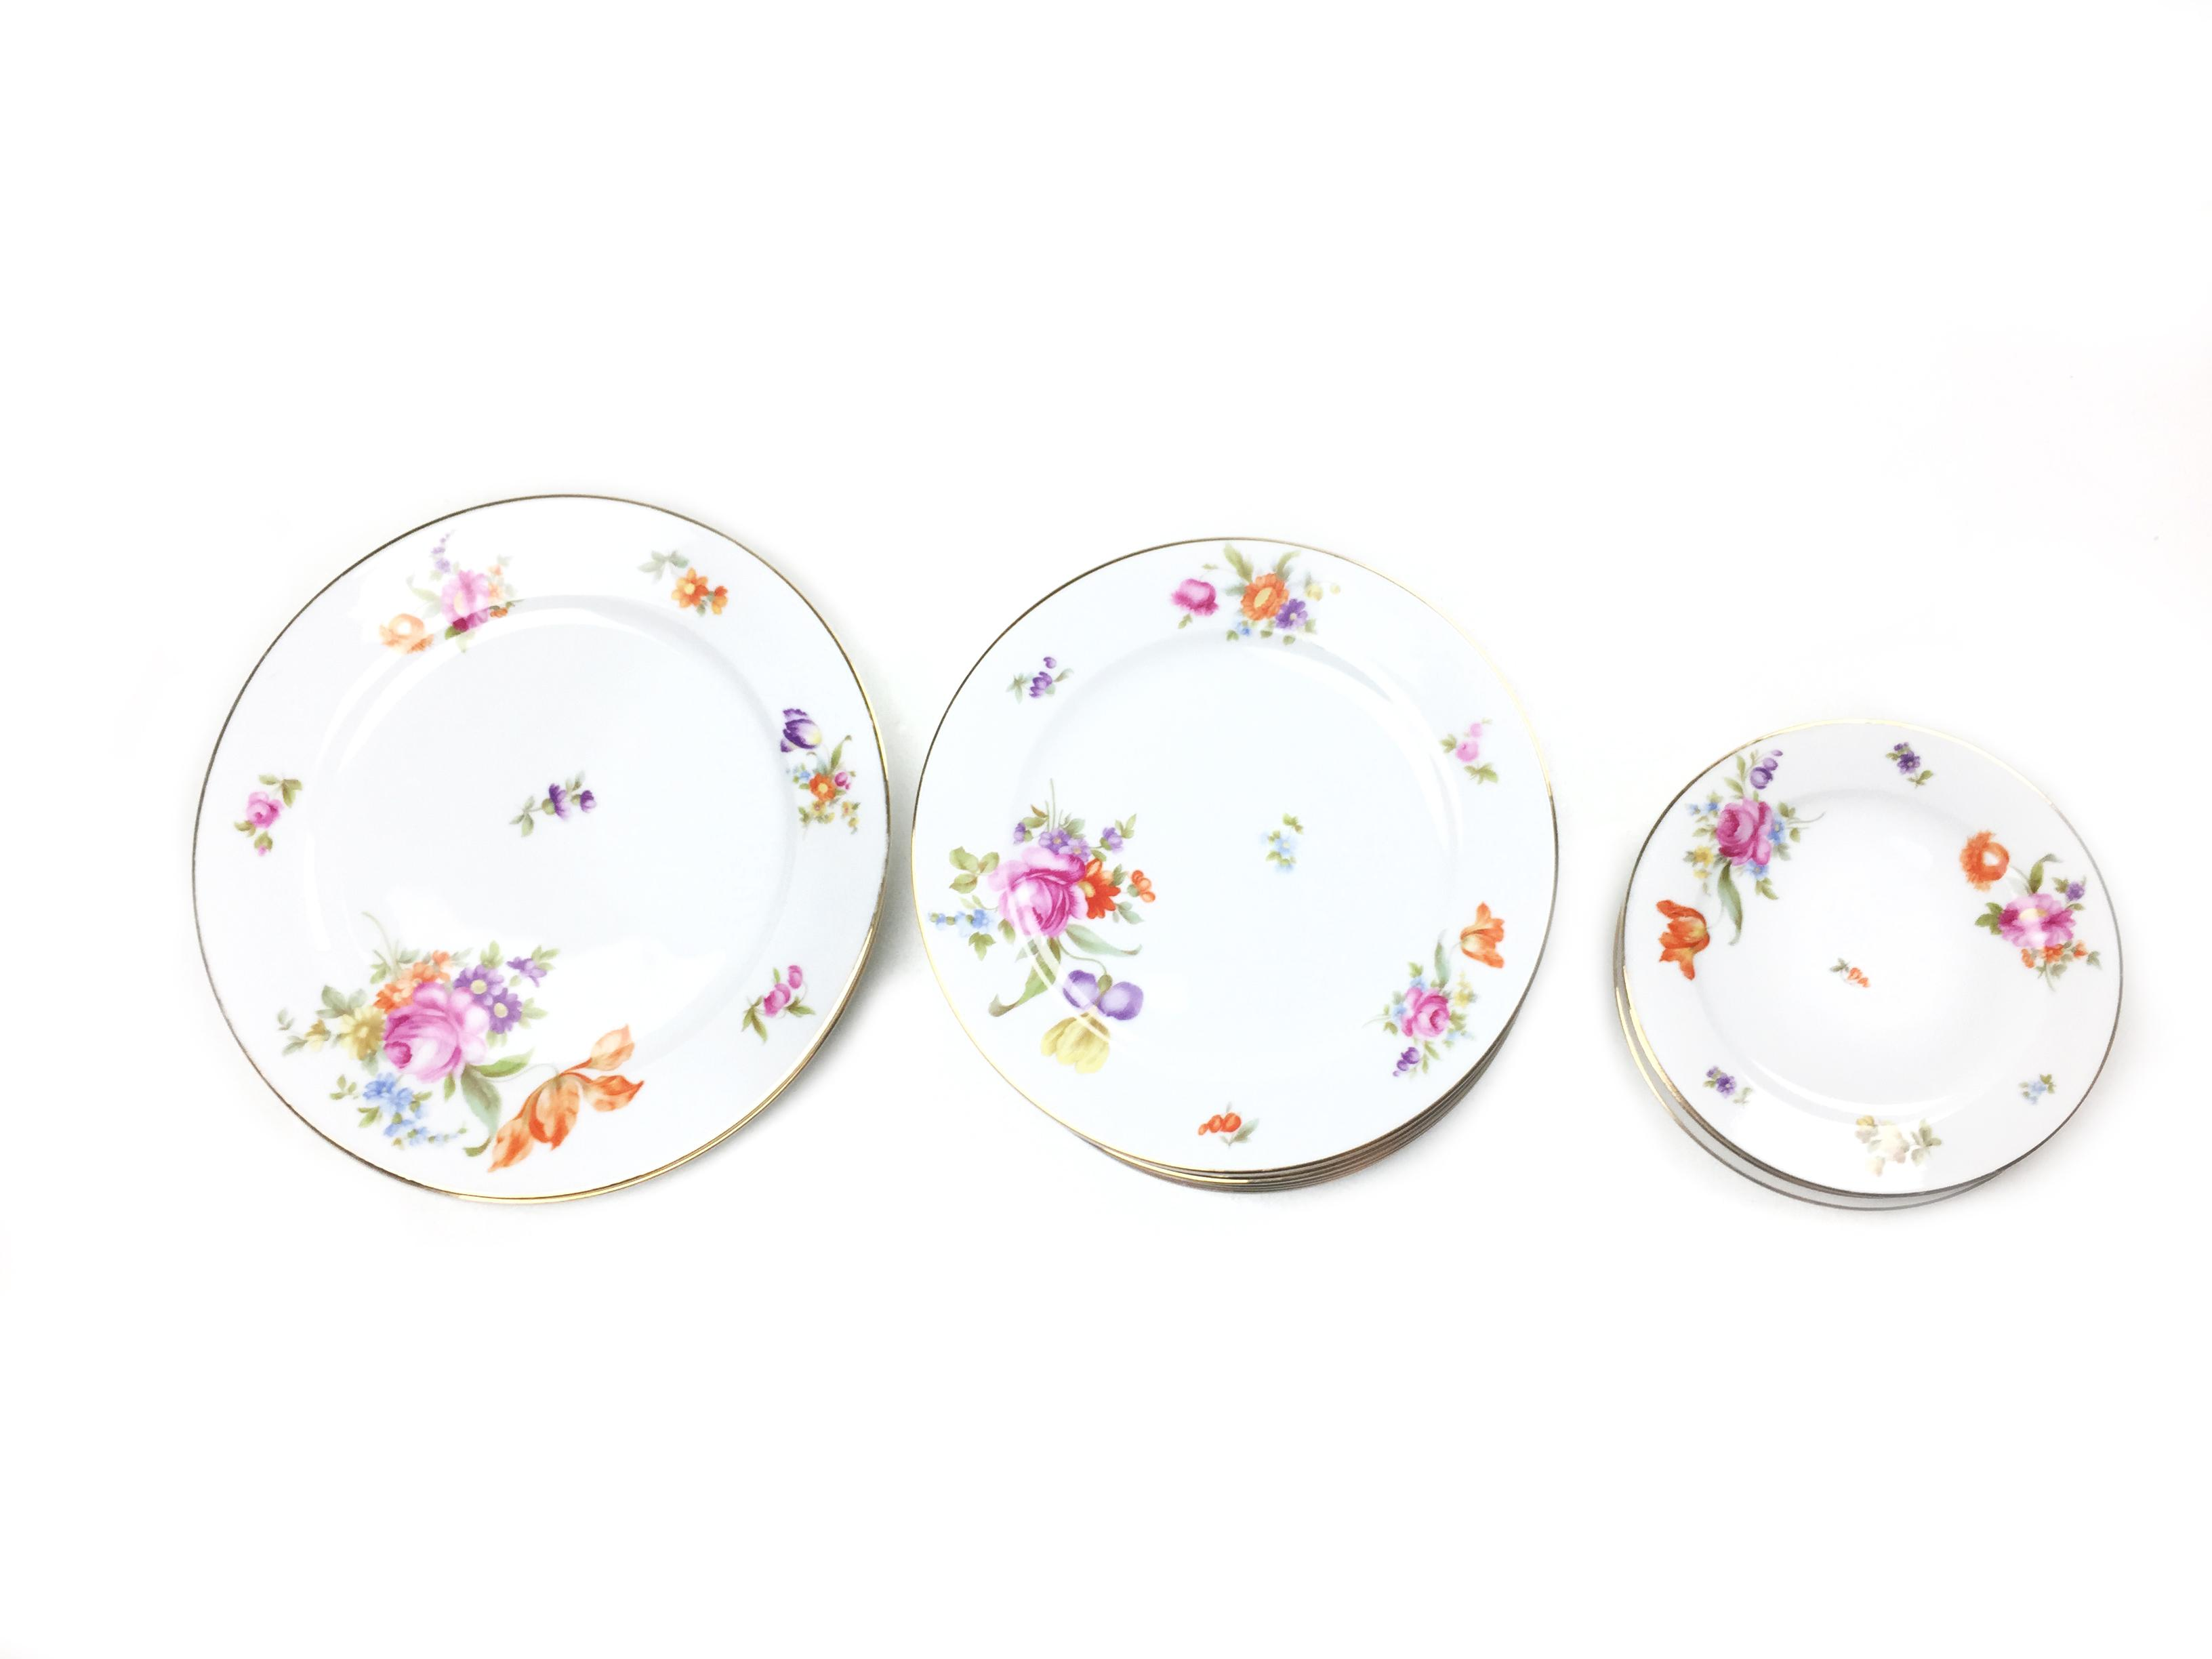 1930s Vintage Thomas Bavaria Floral Fine China Set - Image 2 of 6  sc 1 st  Chairish & 1930s Vintage Thomas Bavaria Floral Fine China Set | Chairish